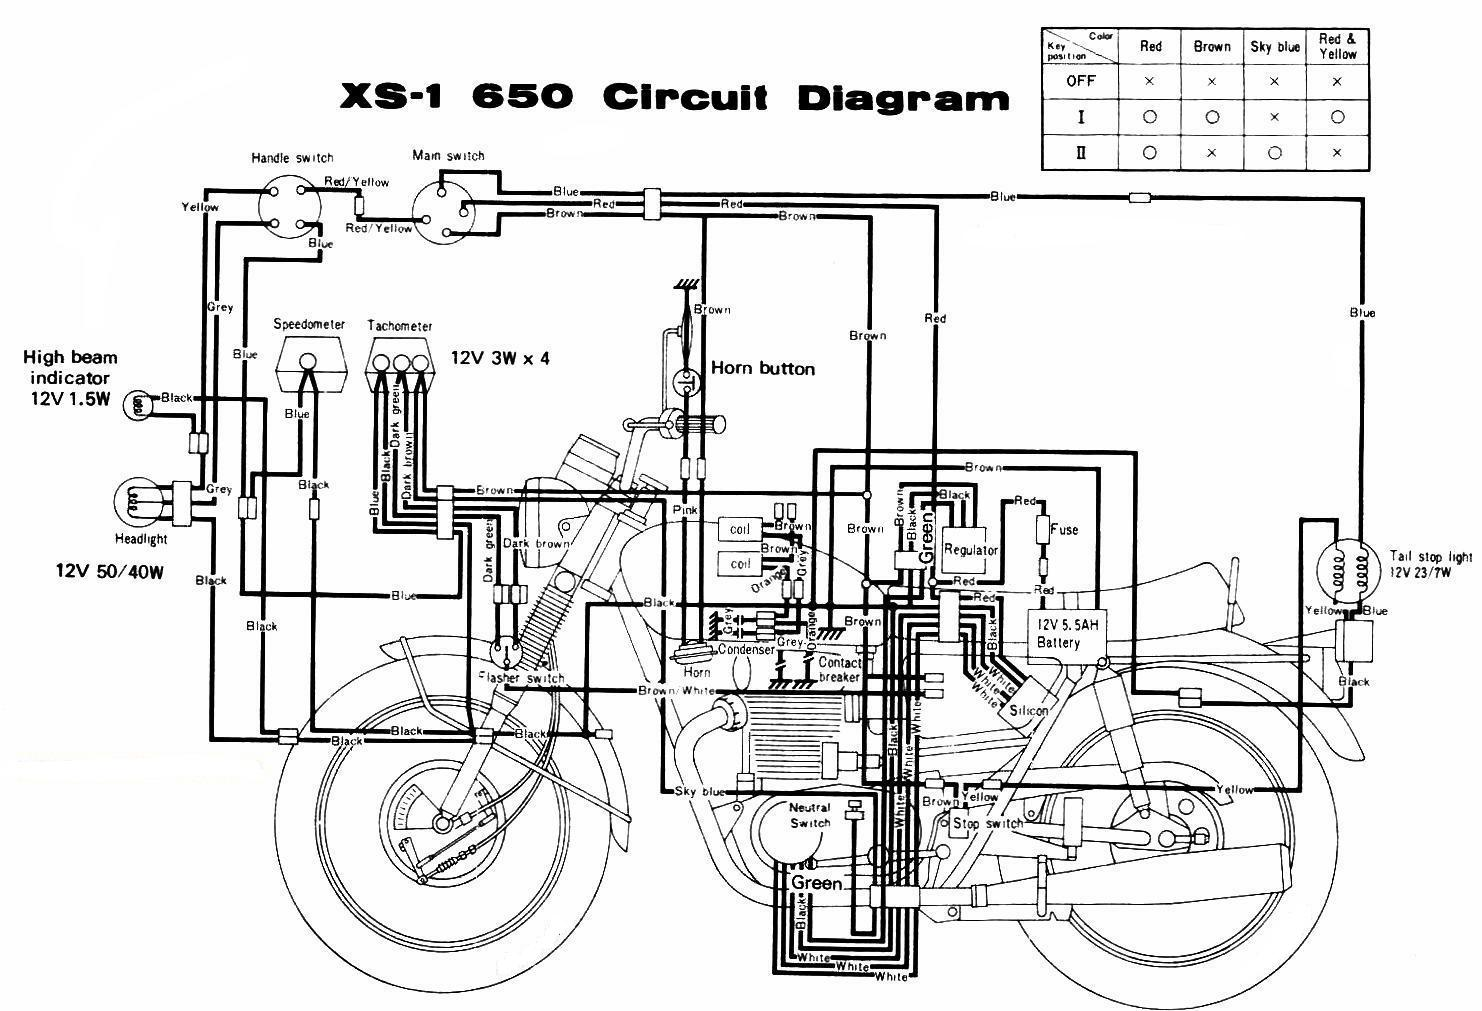 Wiring Diagrams 70 Trail Bike Parts On Ct70 Pit Harness Diagram 1970 Xs1 Page 1